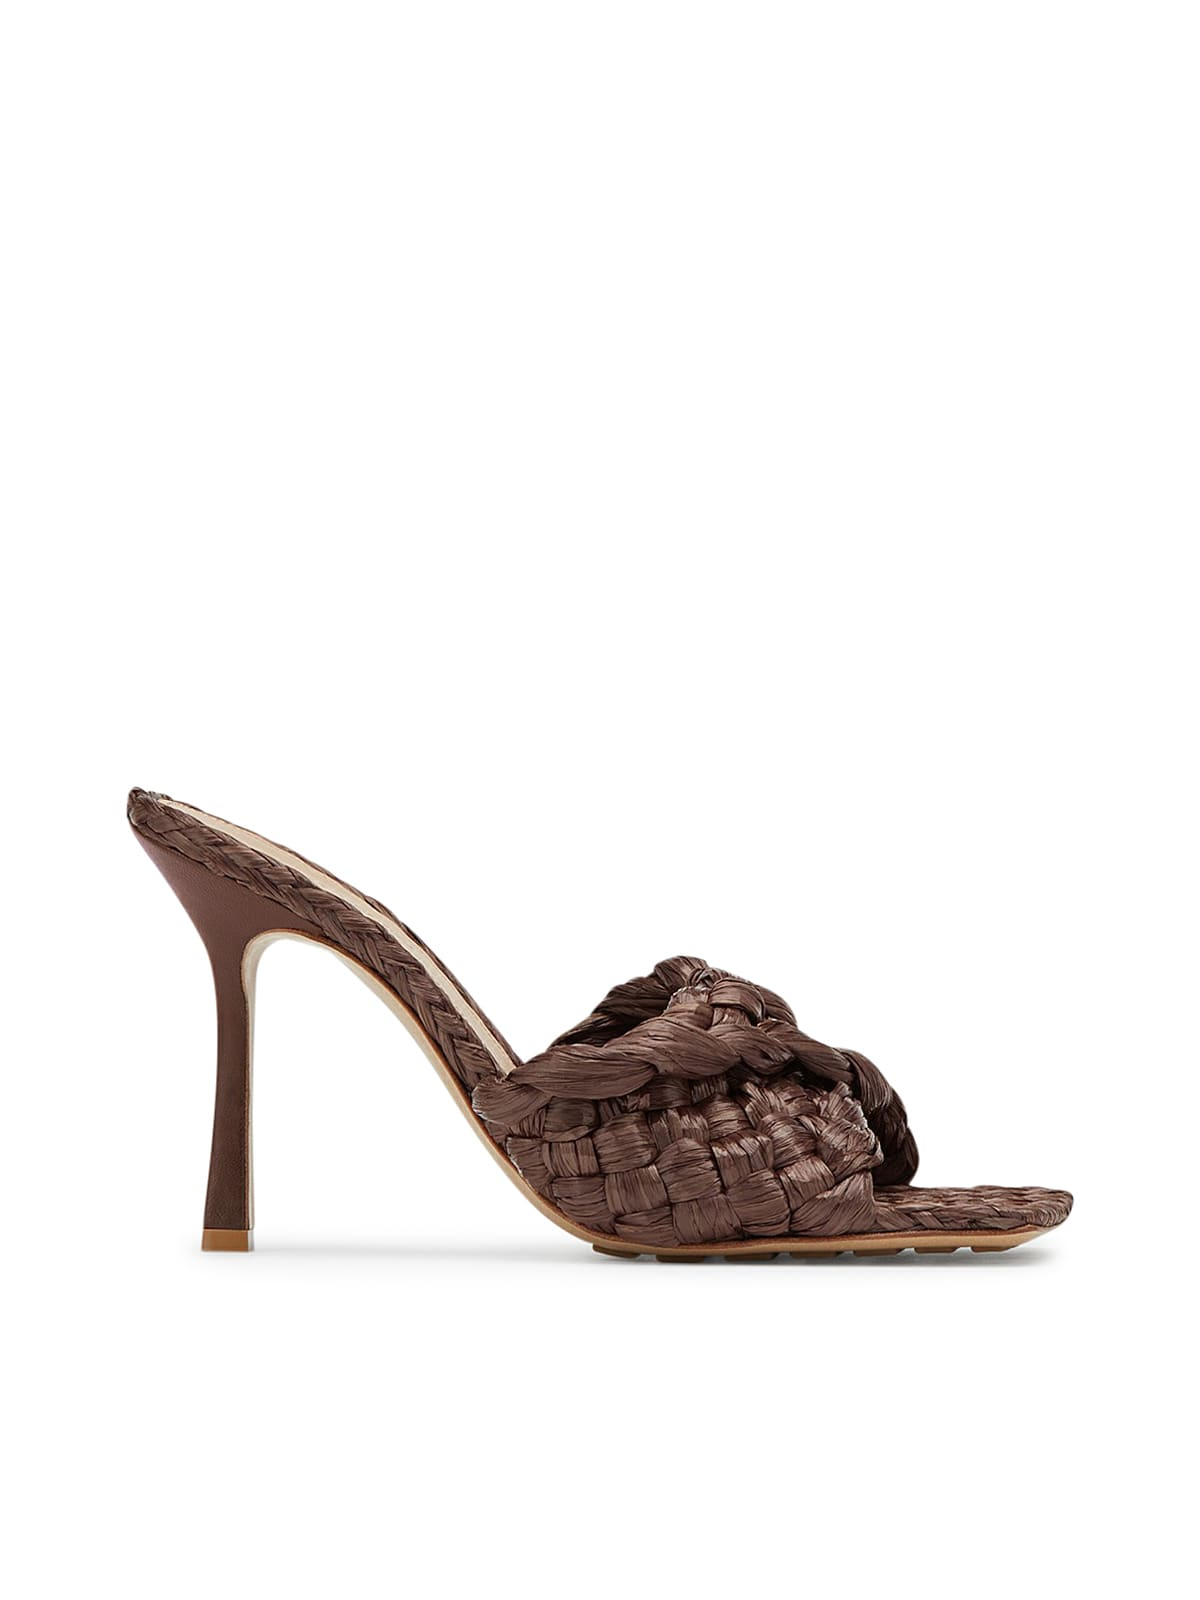 Bottega Veneta BRAIDED STRETCH SANDALS